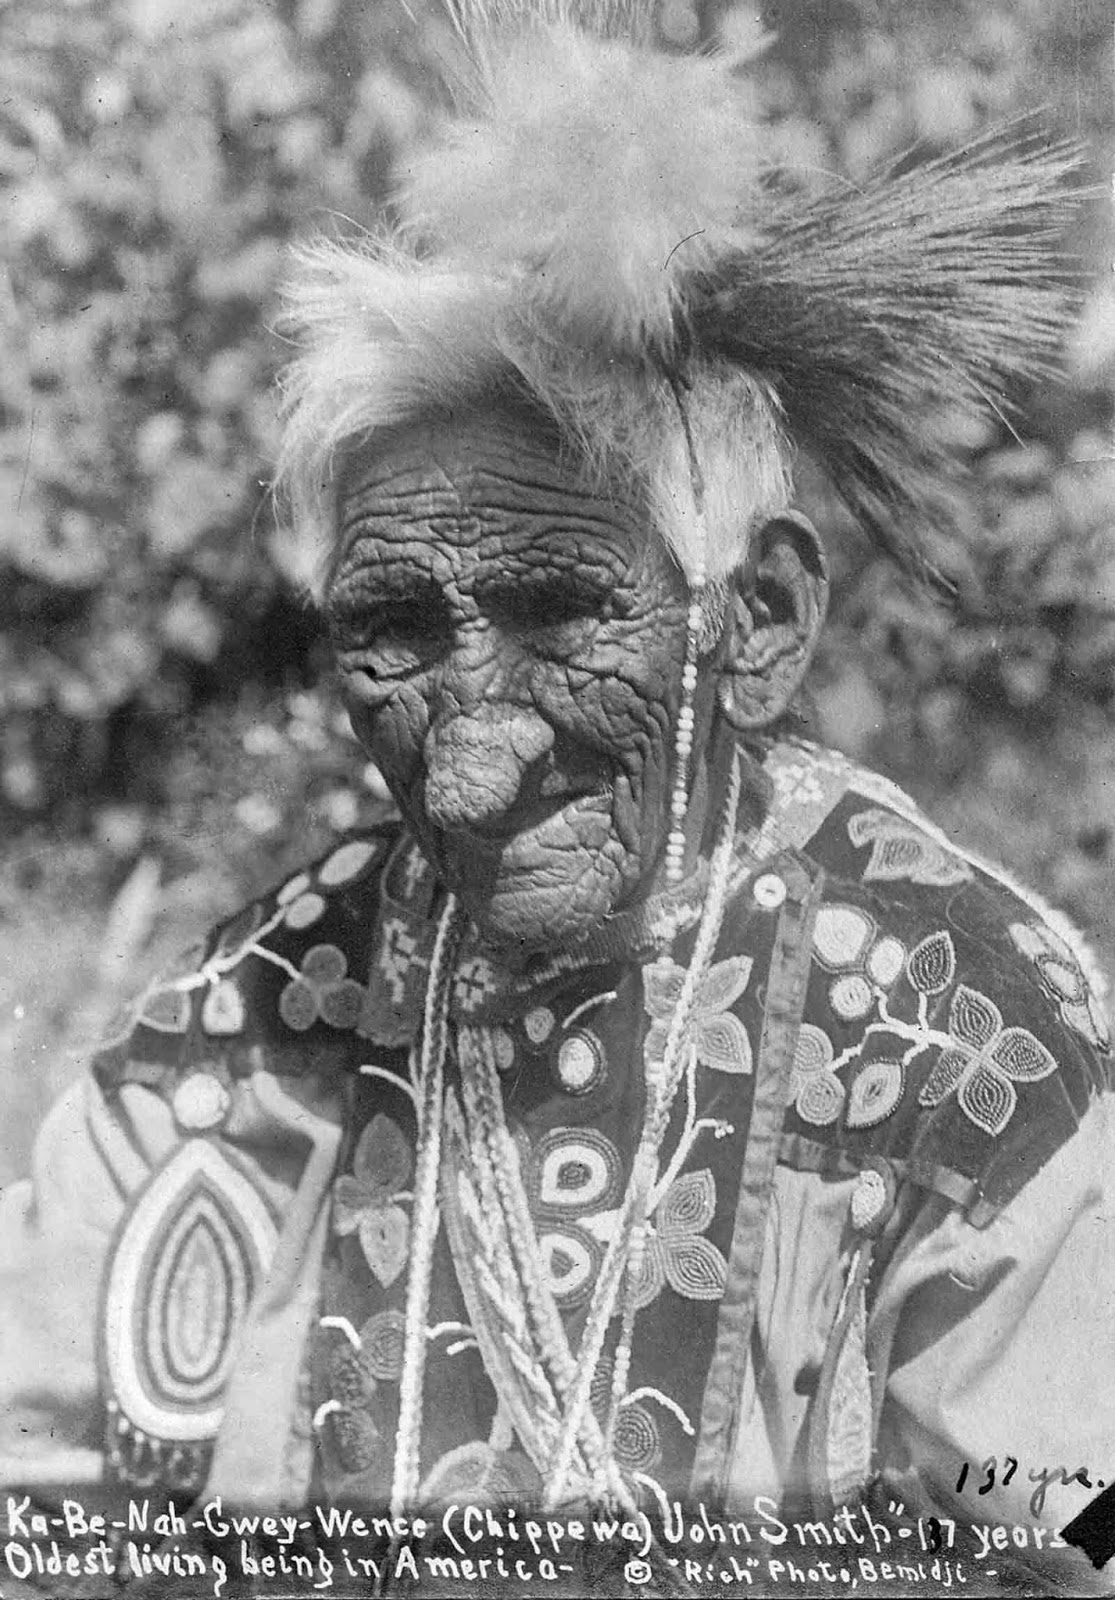 Chief John Smith Reputed To Be 138 Years Old When He Died 1784 1922 Rare Historical Photos